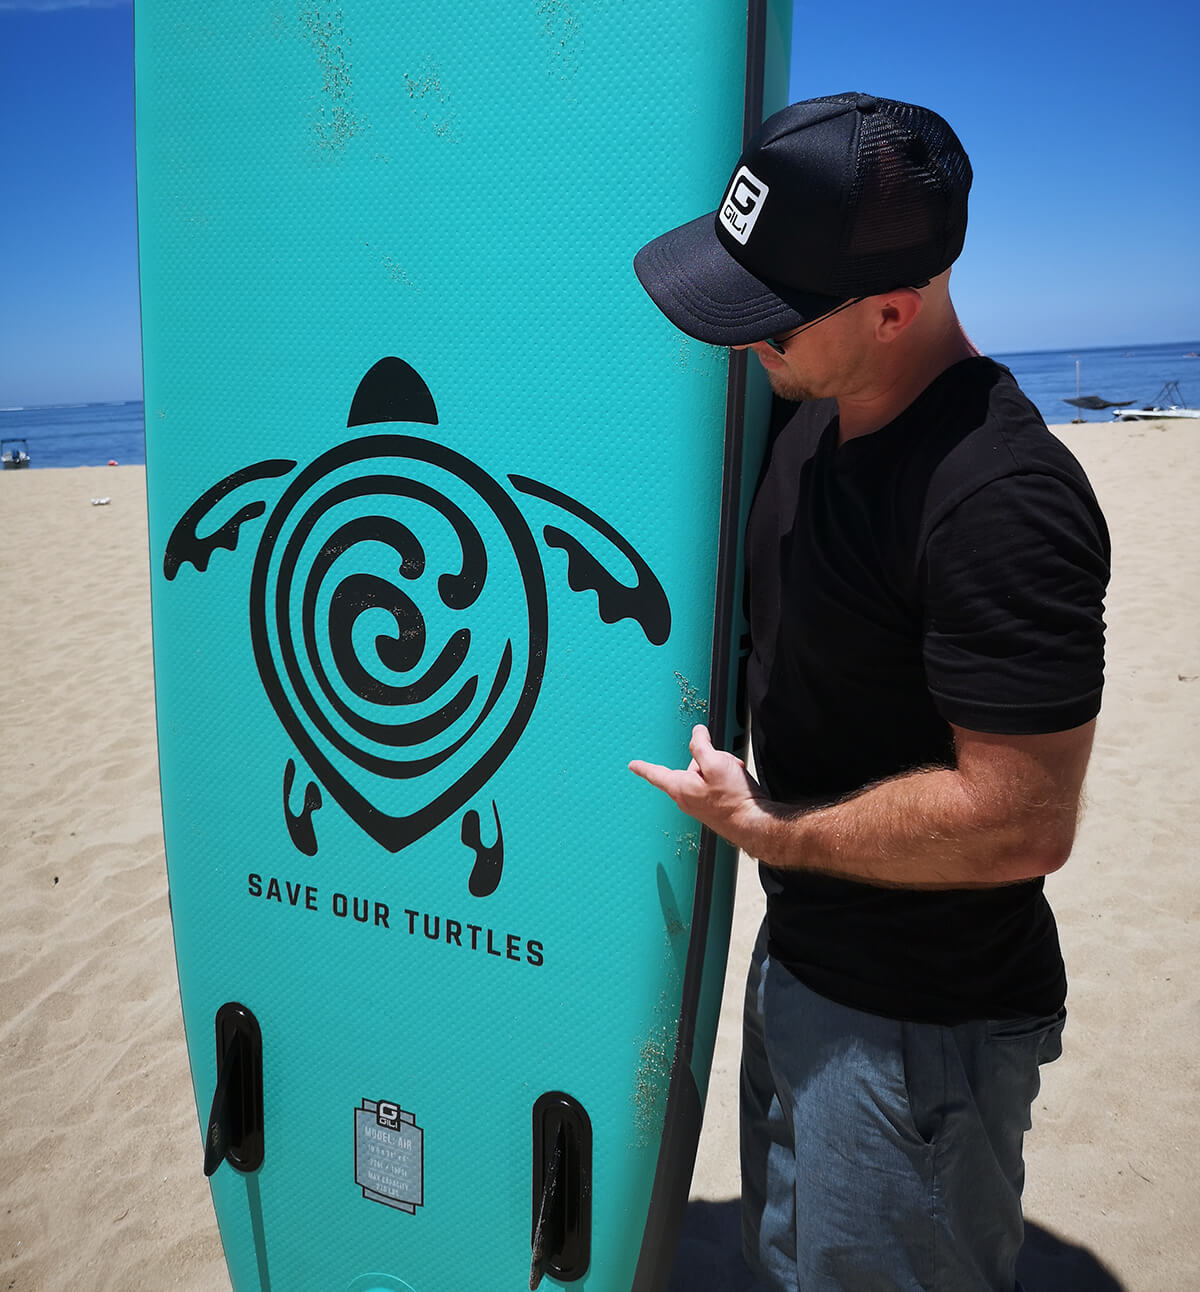 GILI Air Inflatable Paddle Board - Save Our Turtles